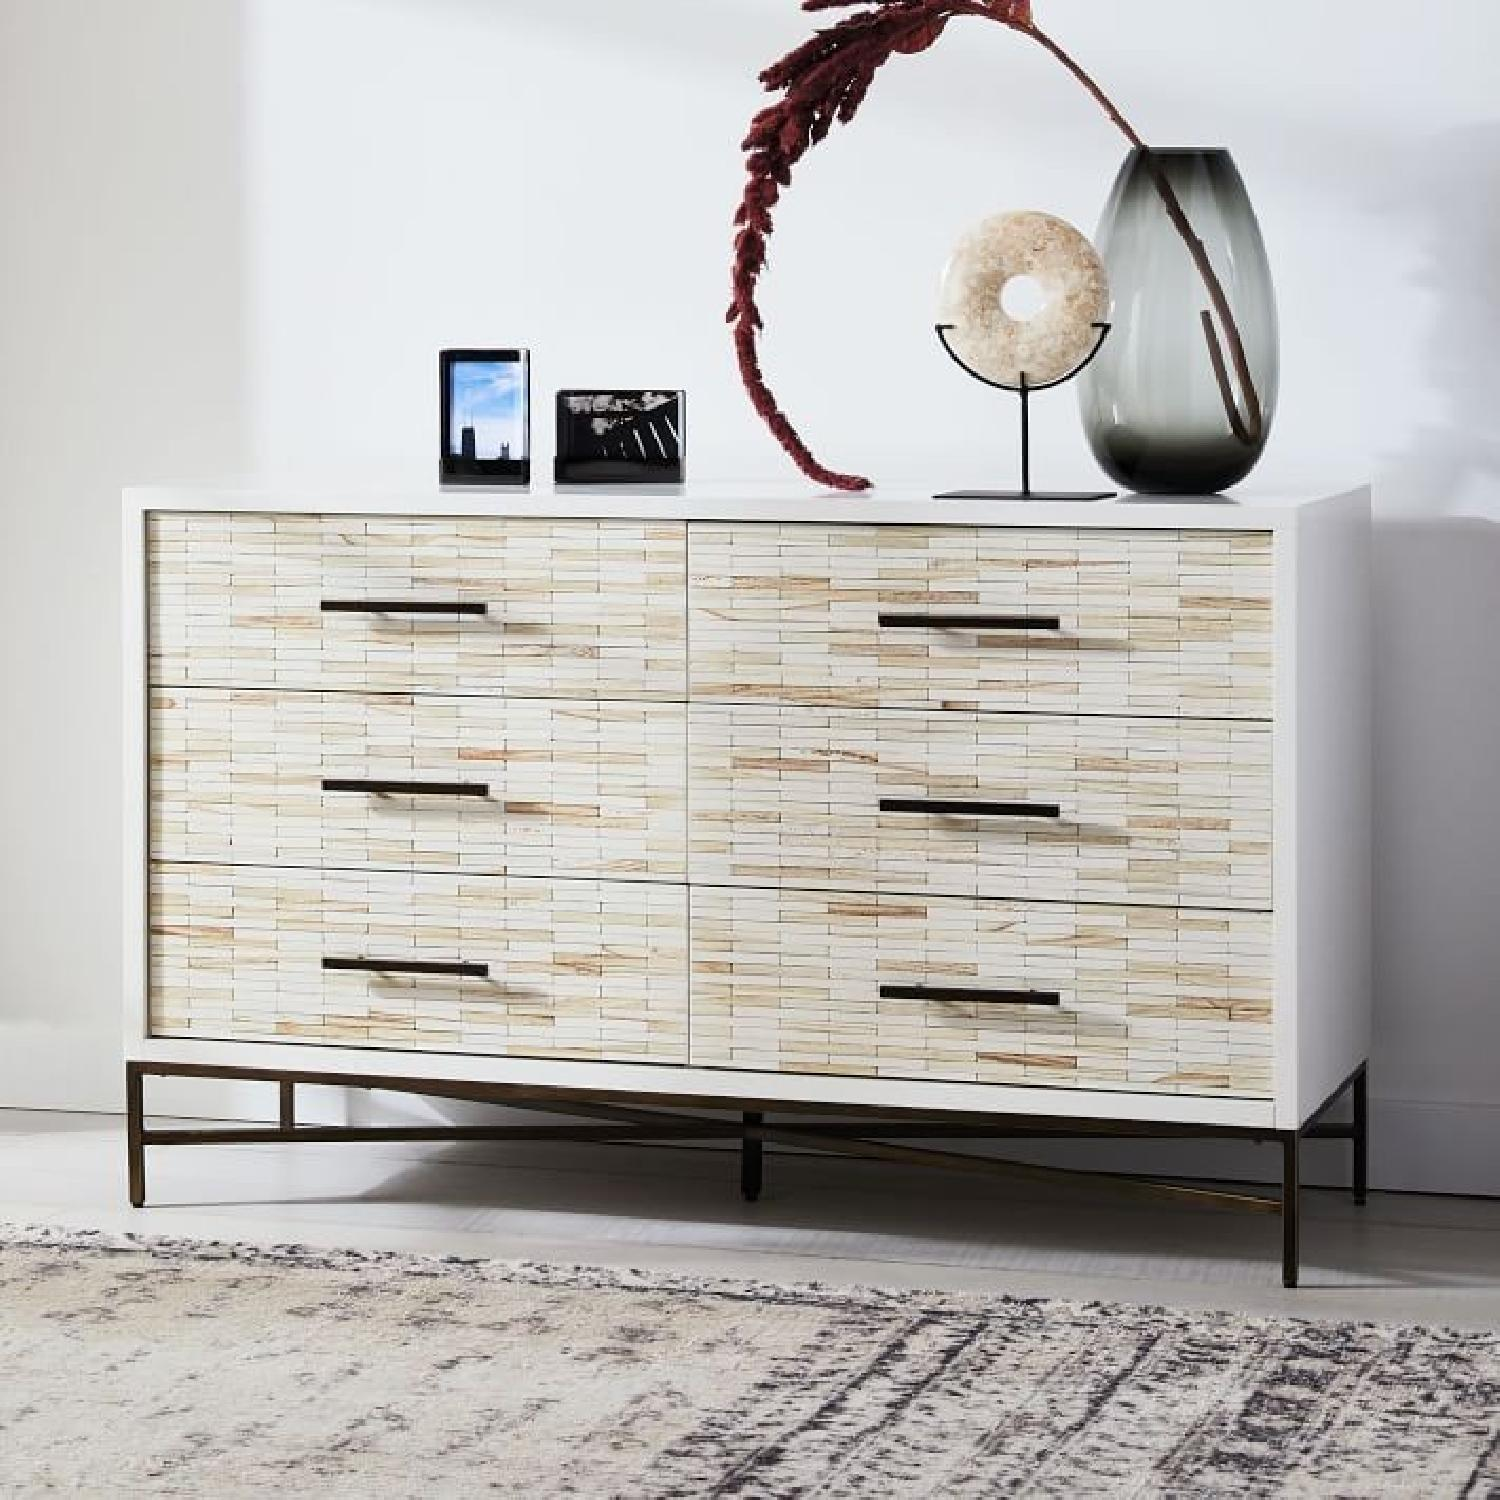 West Elm Wood Tiled 6-Drawer Dresser in Whitewash-5